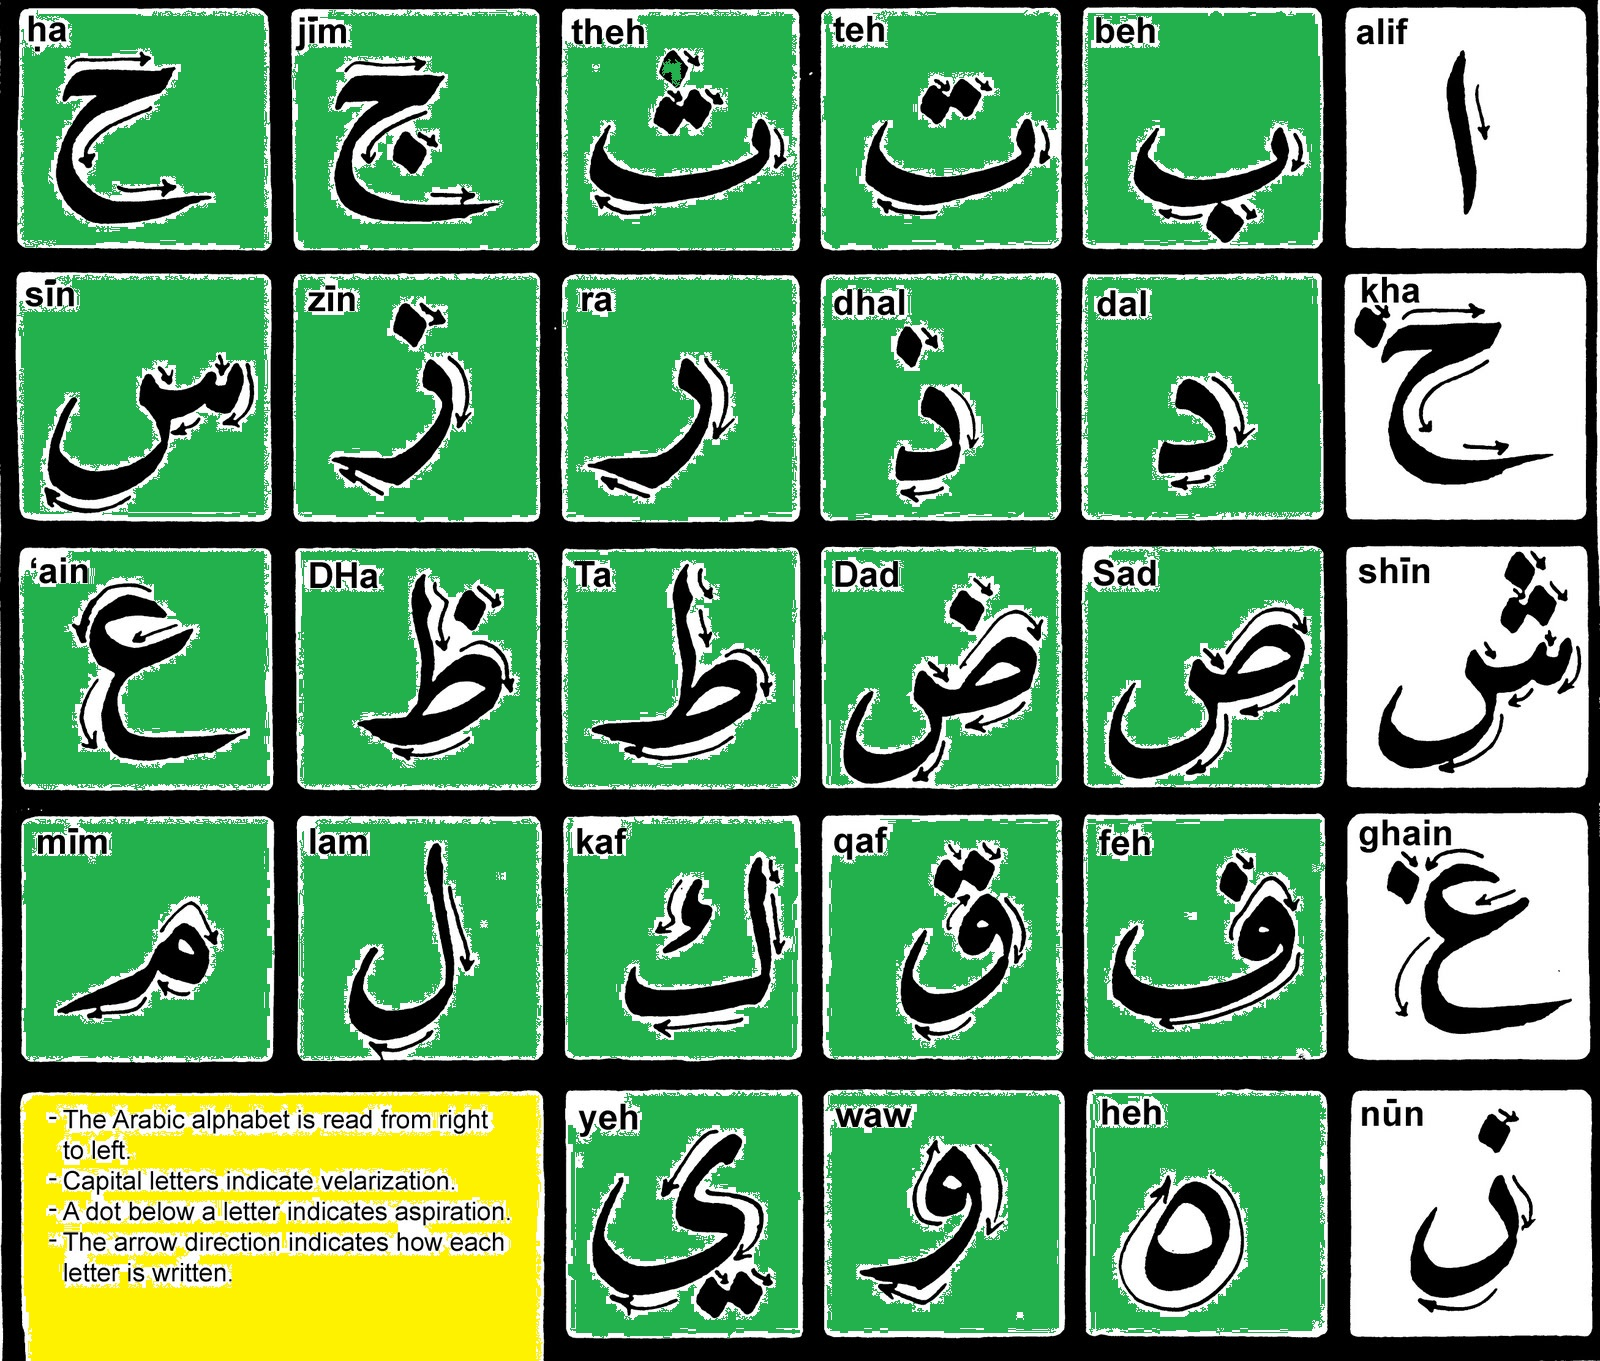 print media essay in urdu In the modern world print media has assumed the impartial views about the national and international etc, issues, but what the reader very often does not recognize.